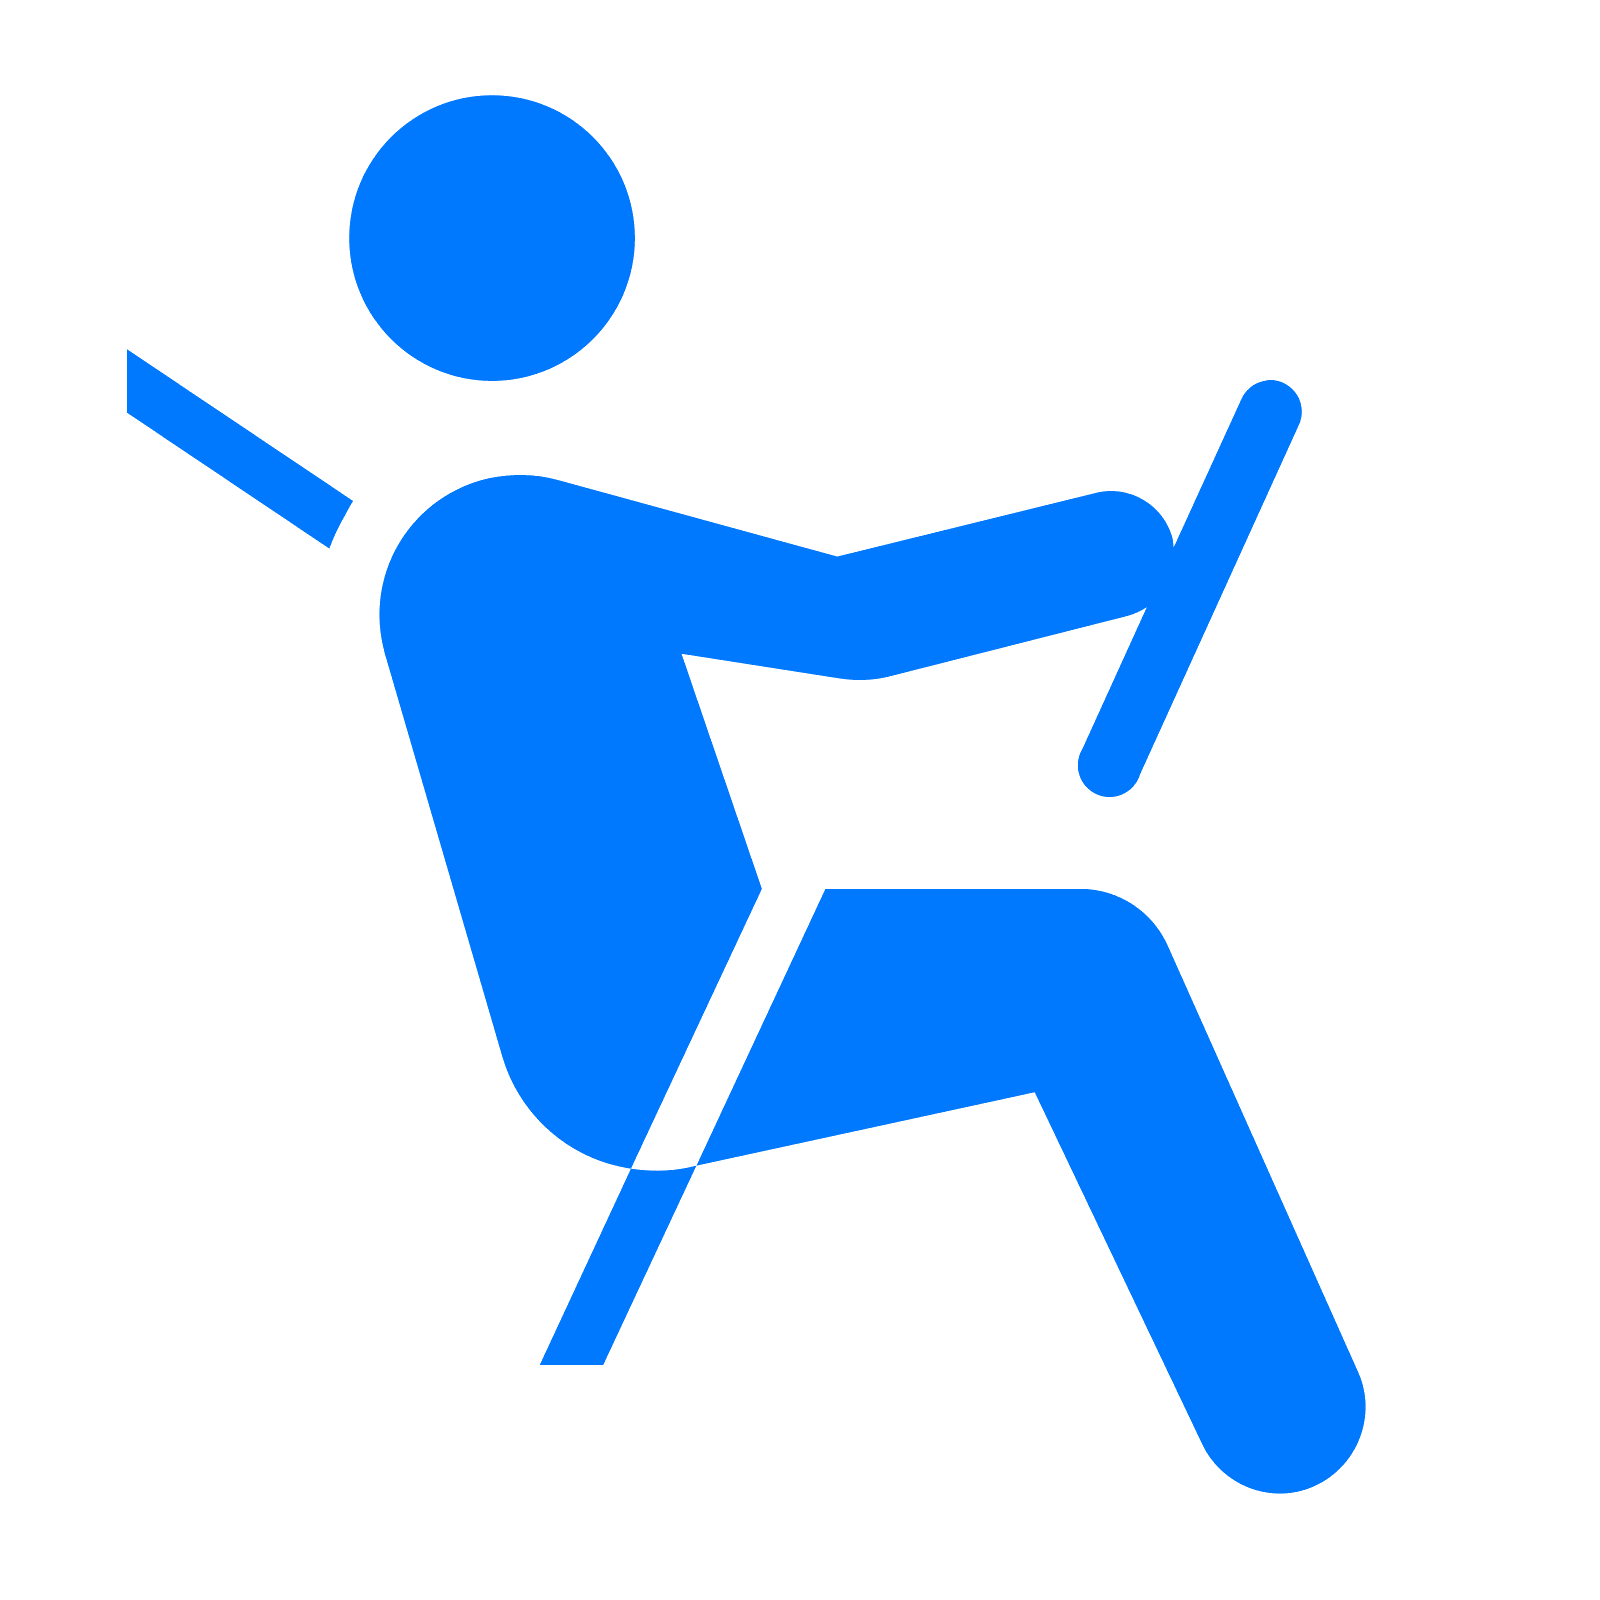 Computer icons clip art. Driving clipart car owner